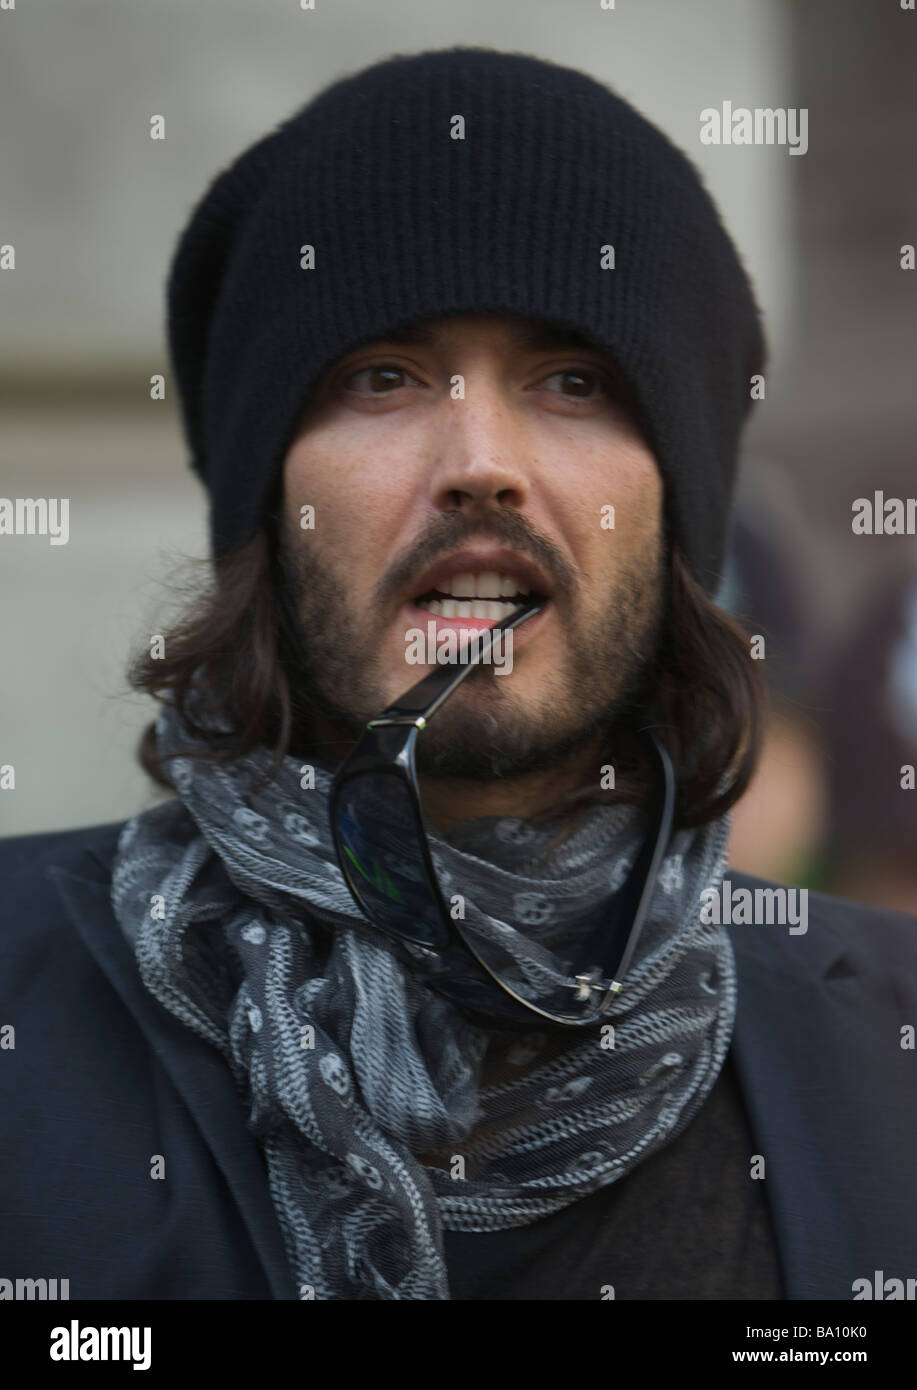 LONDON 1 April Pic shows Russel Brand at the G20 Protests at the bank of England Bank Of England London 1st of April - Stock Image